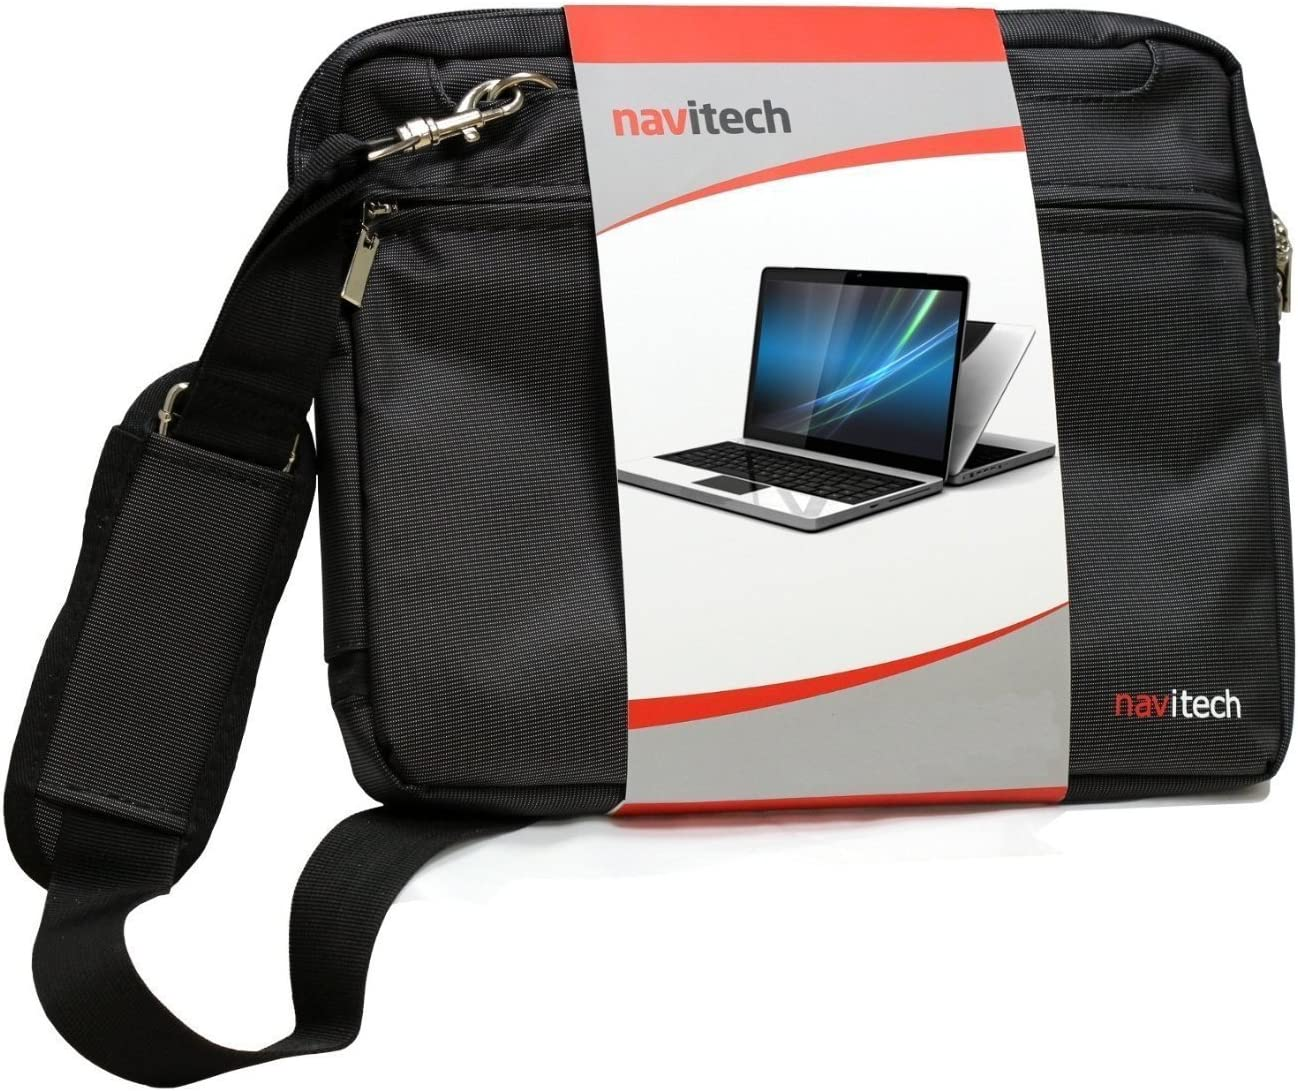 Navitech Black Sleek Premium Water Resistant Shock Absorbent Carry Bag Case Compatible with The The Acer Travelmate P259 14 inch